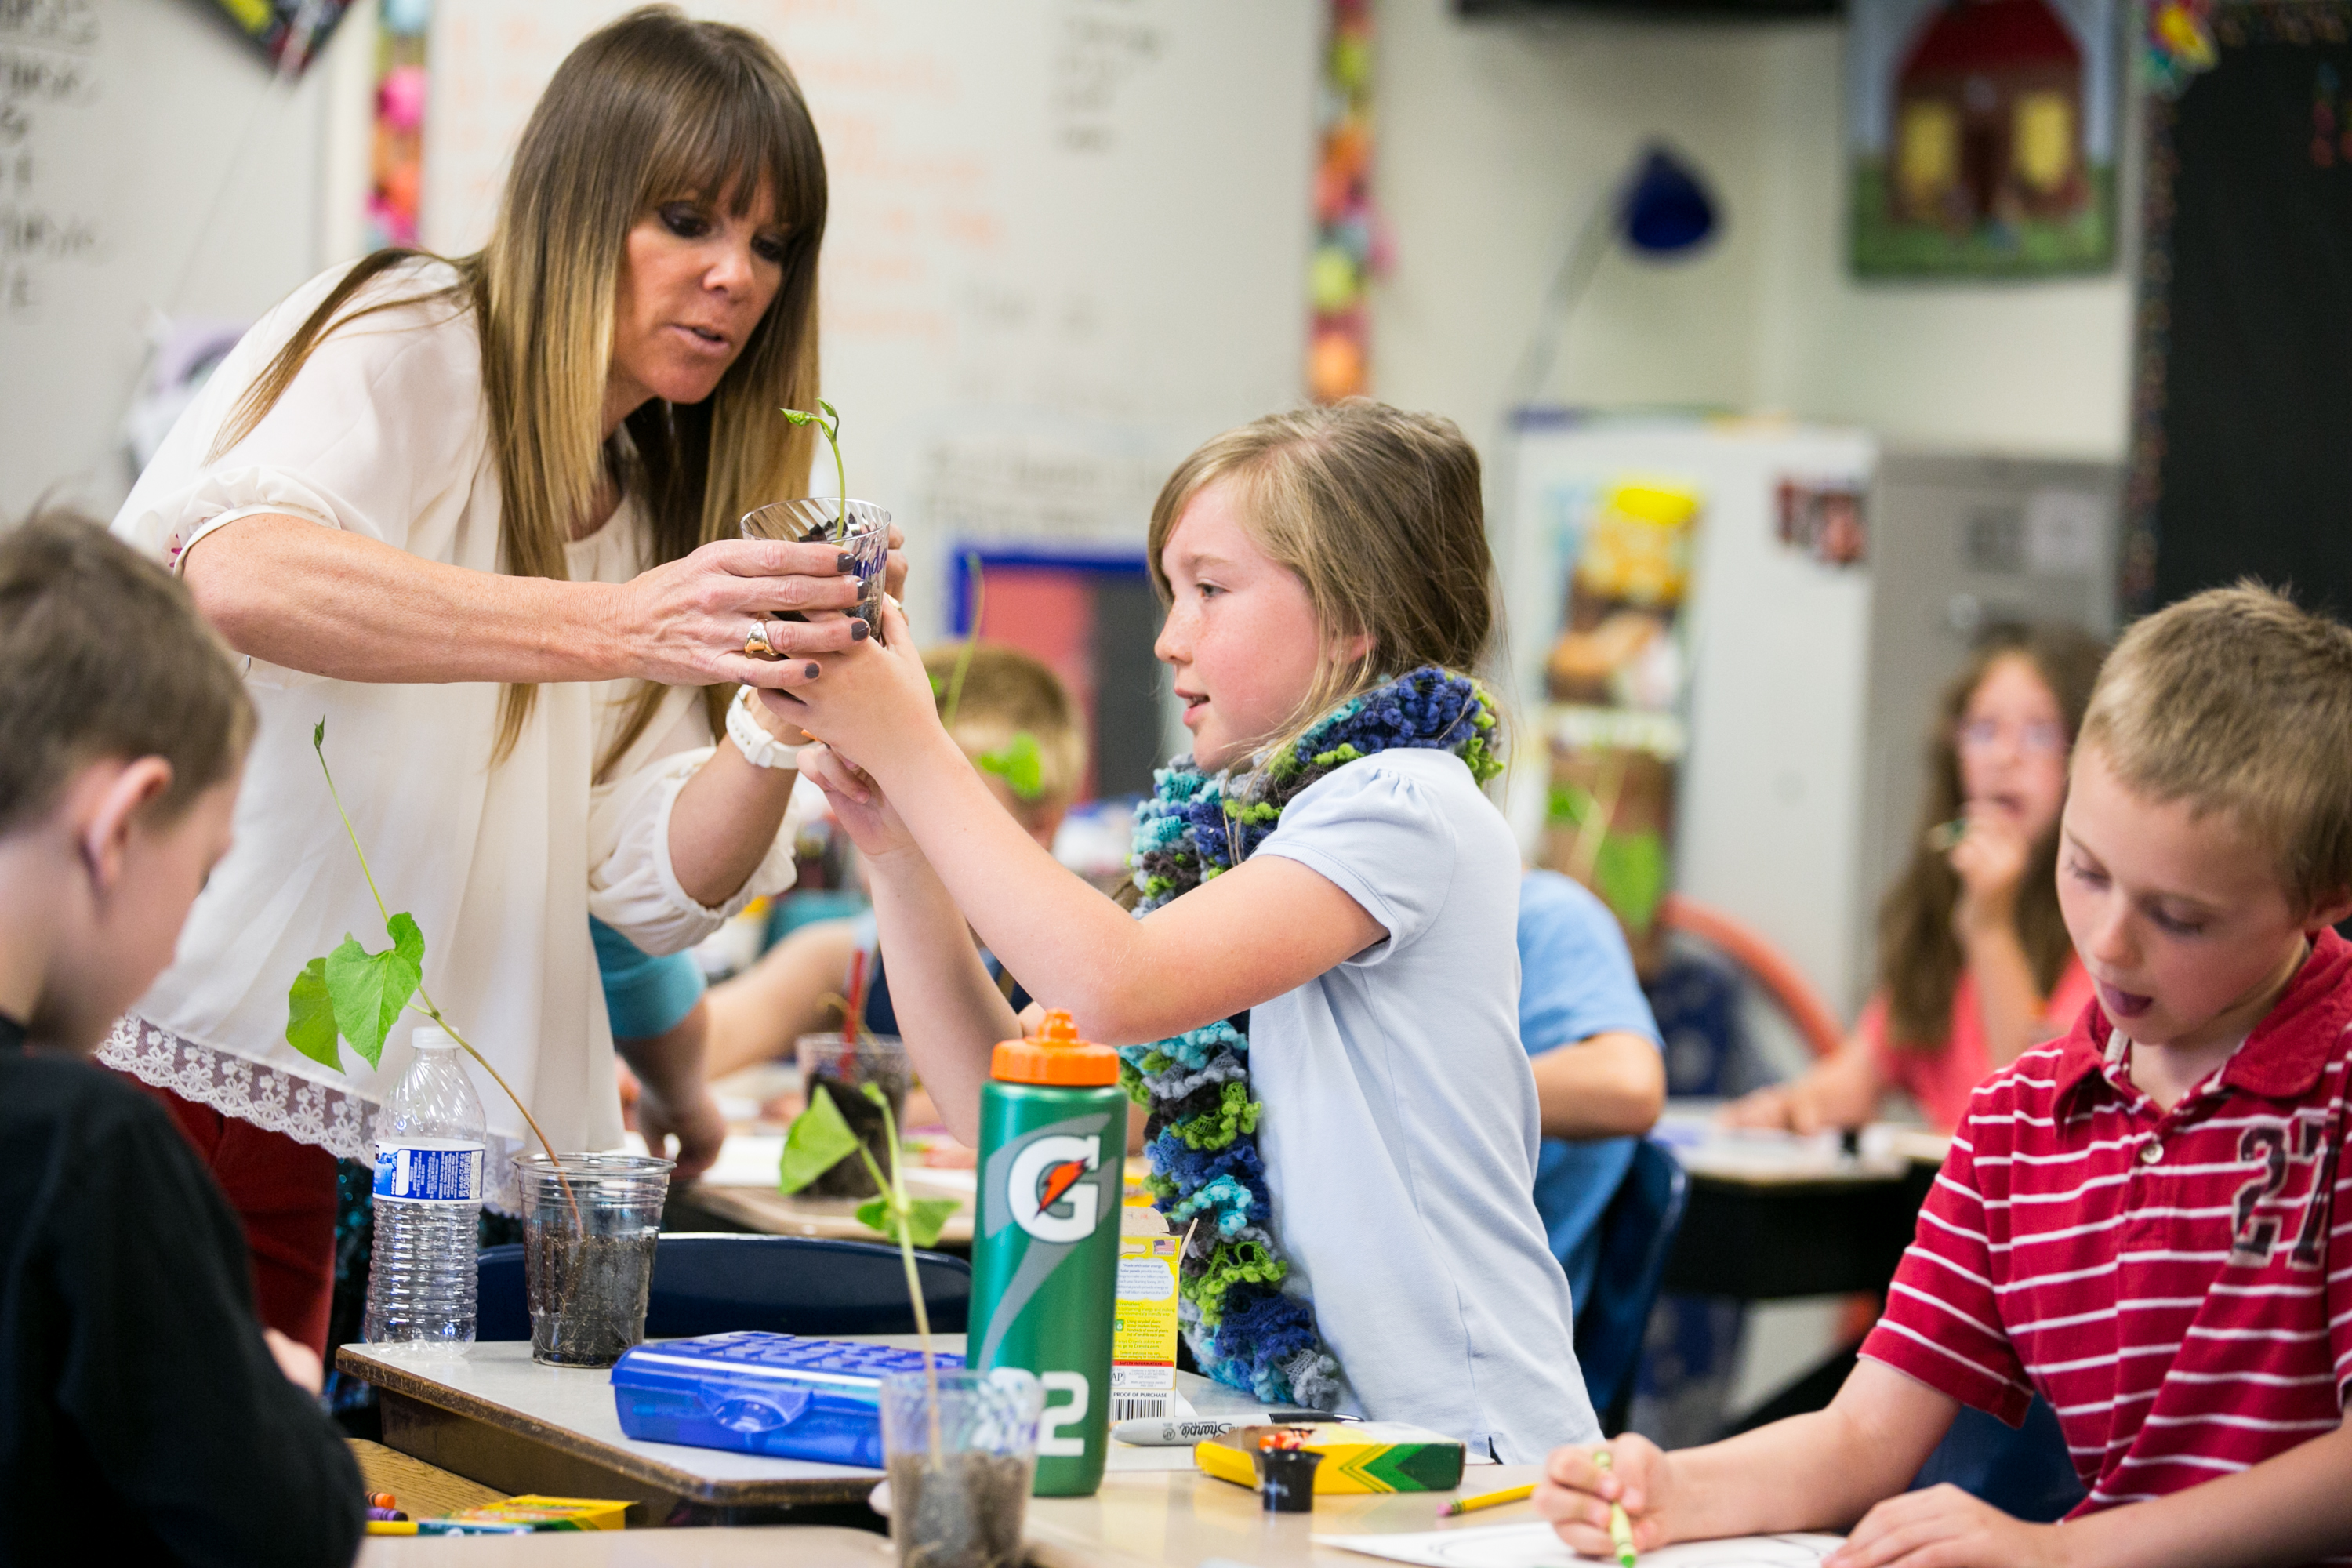 Washington state government for kids - Teacher Students Education Science Classroom Kids